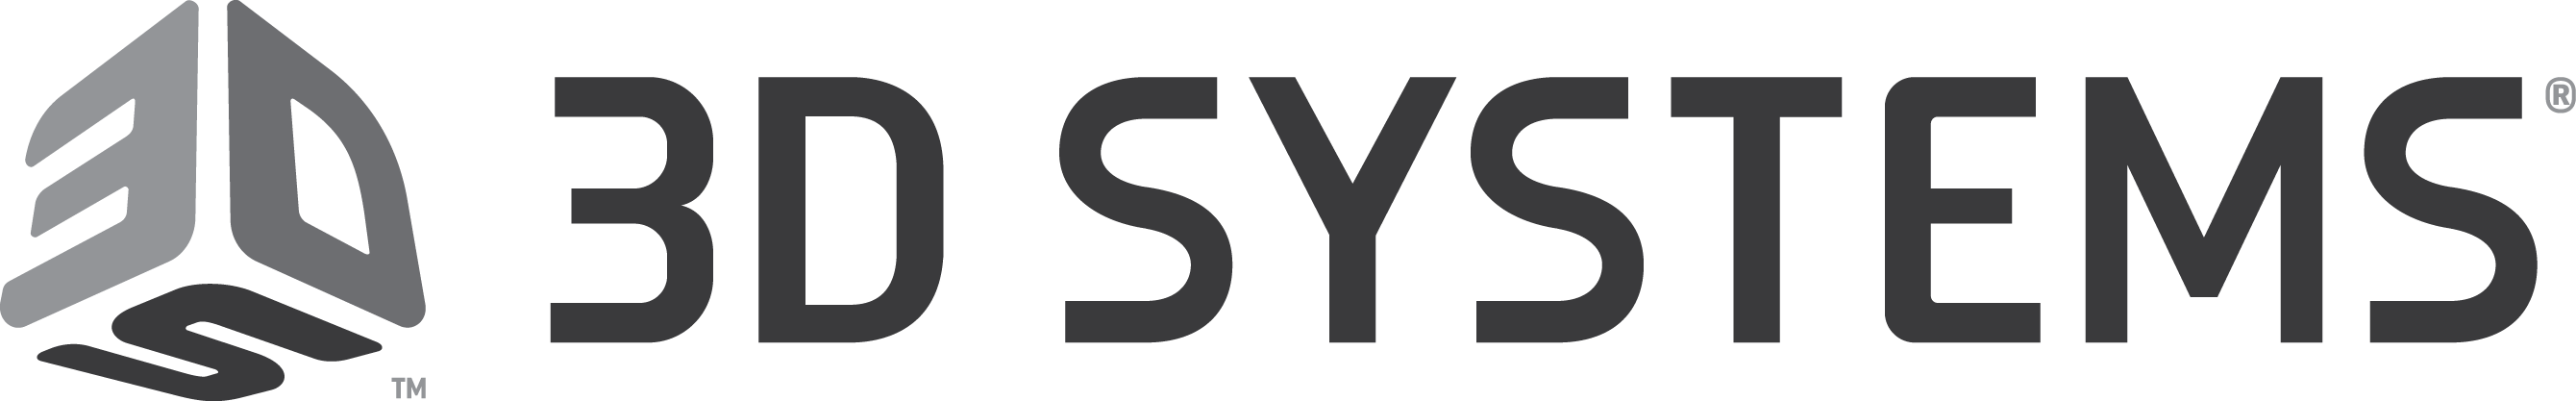 3D Systems logo_3-color_light-bkgrd_tm.png